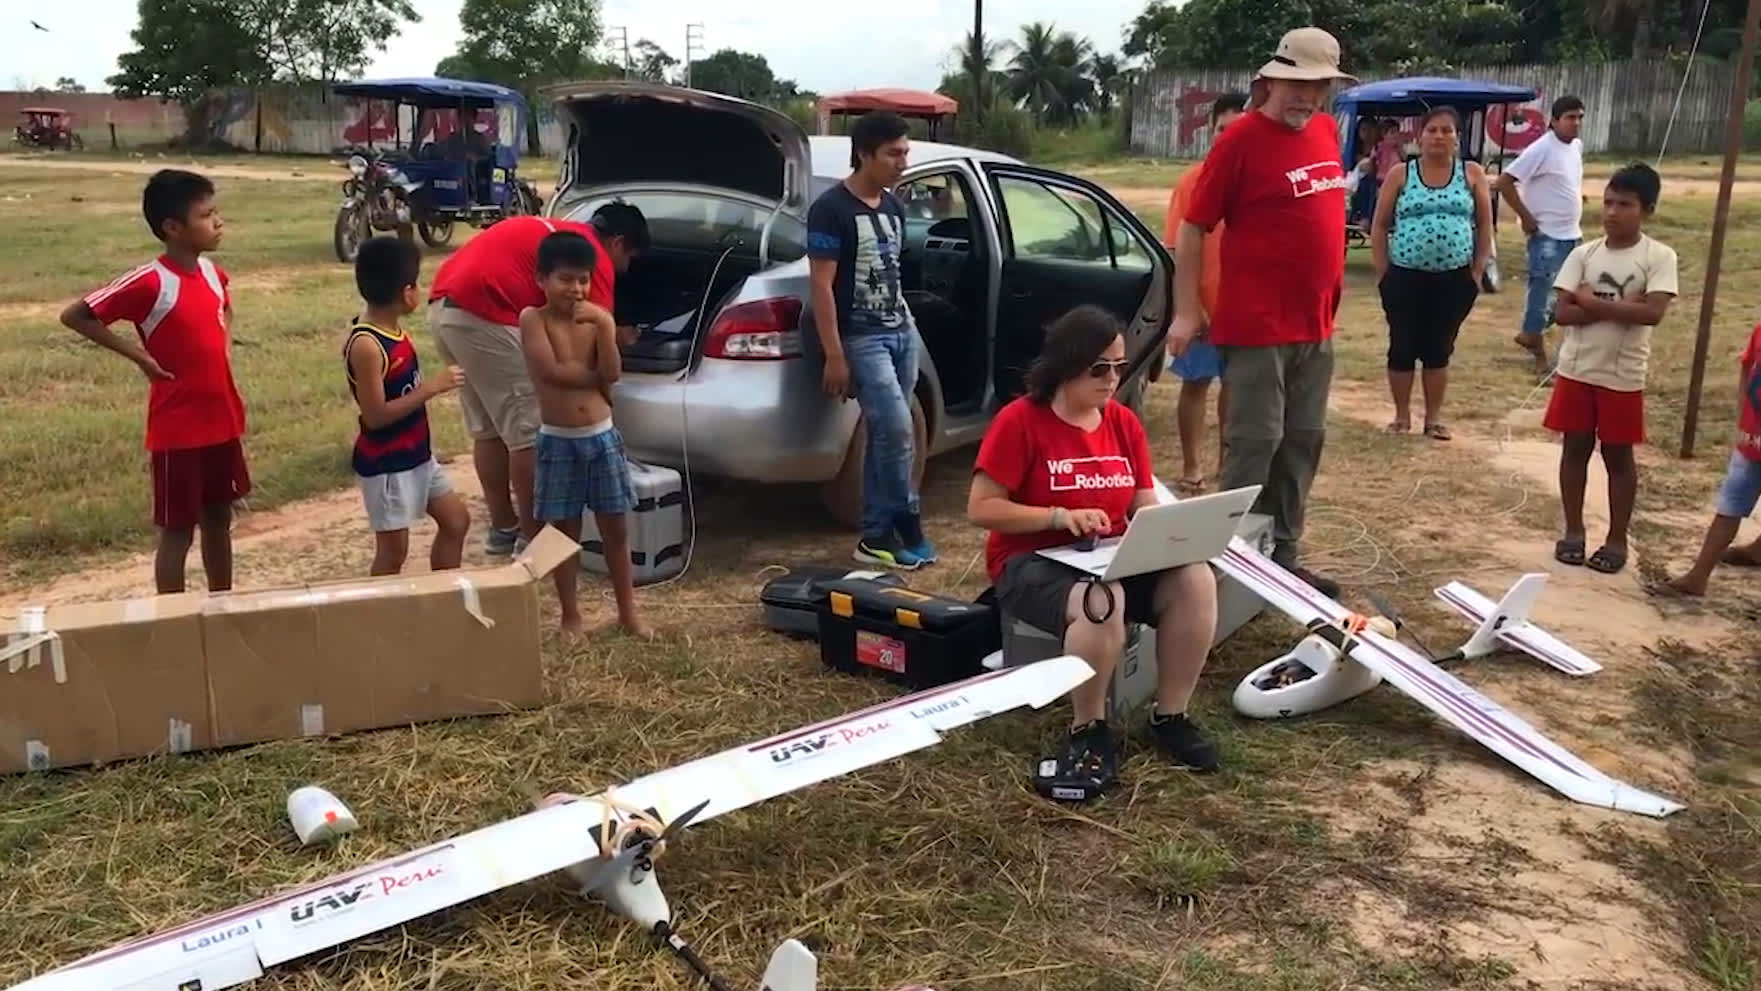 Delivering medical supplies into the remote Amazon is a big challenge, but drones could help